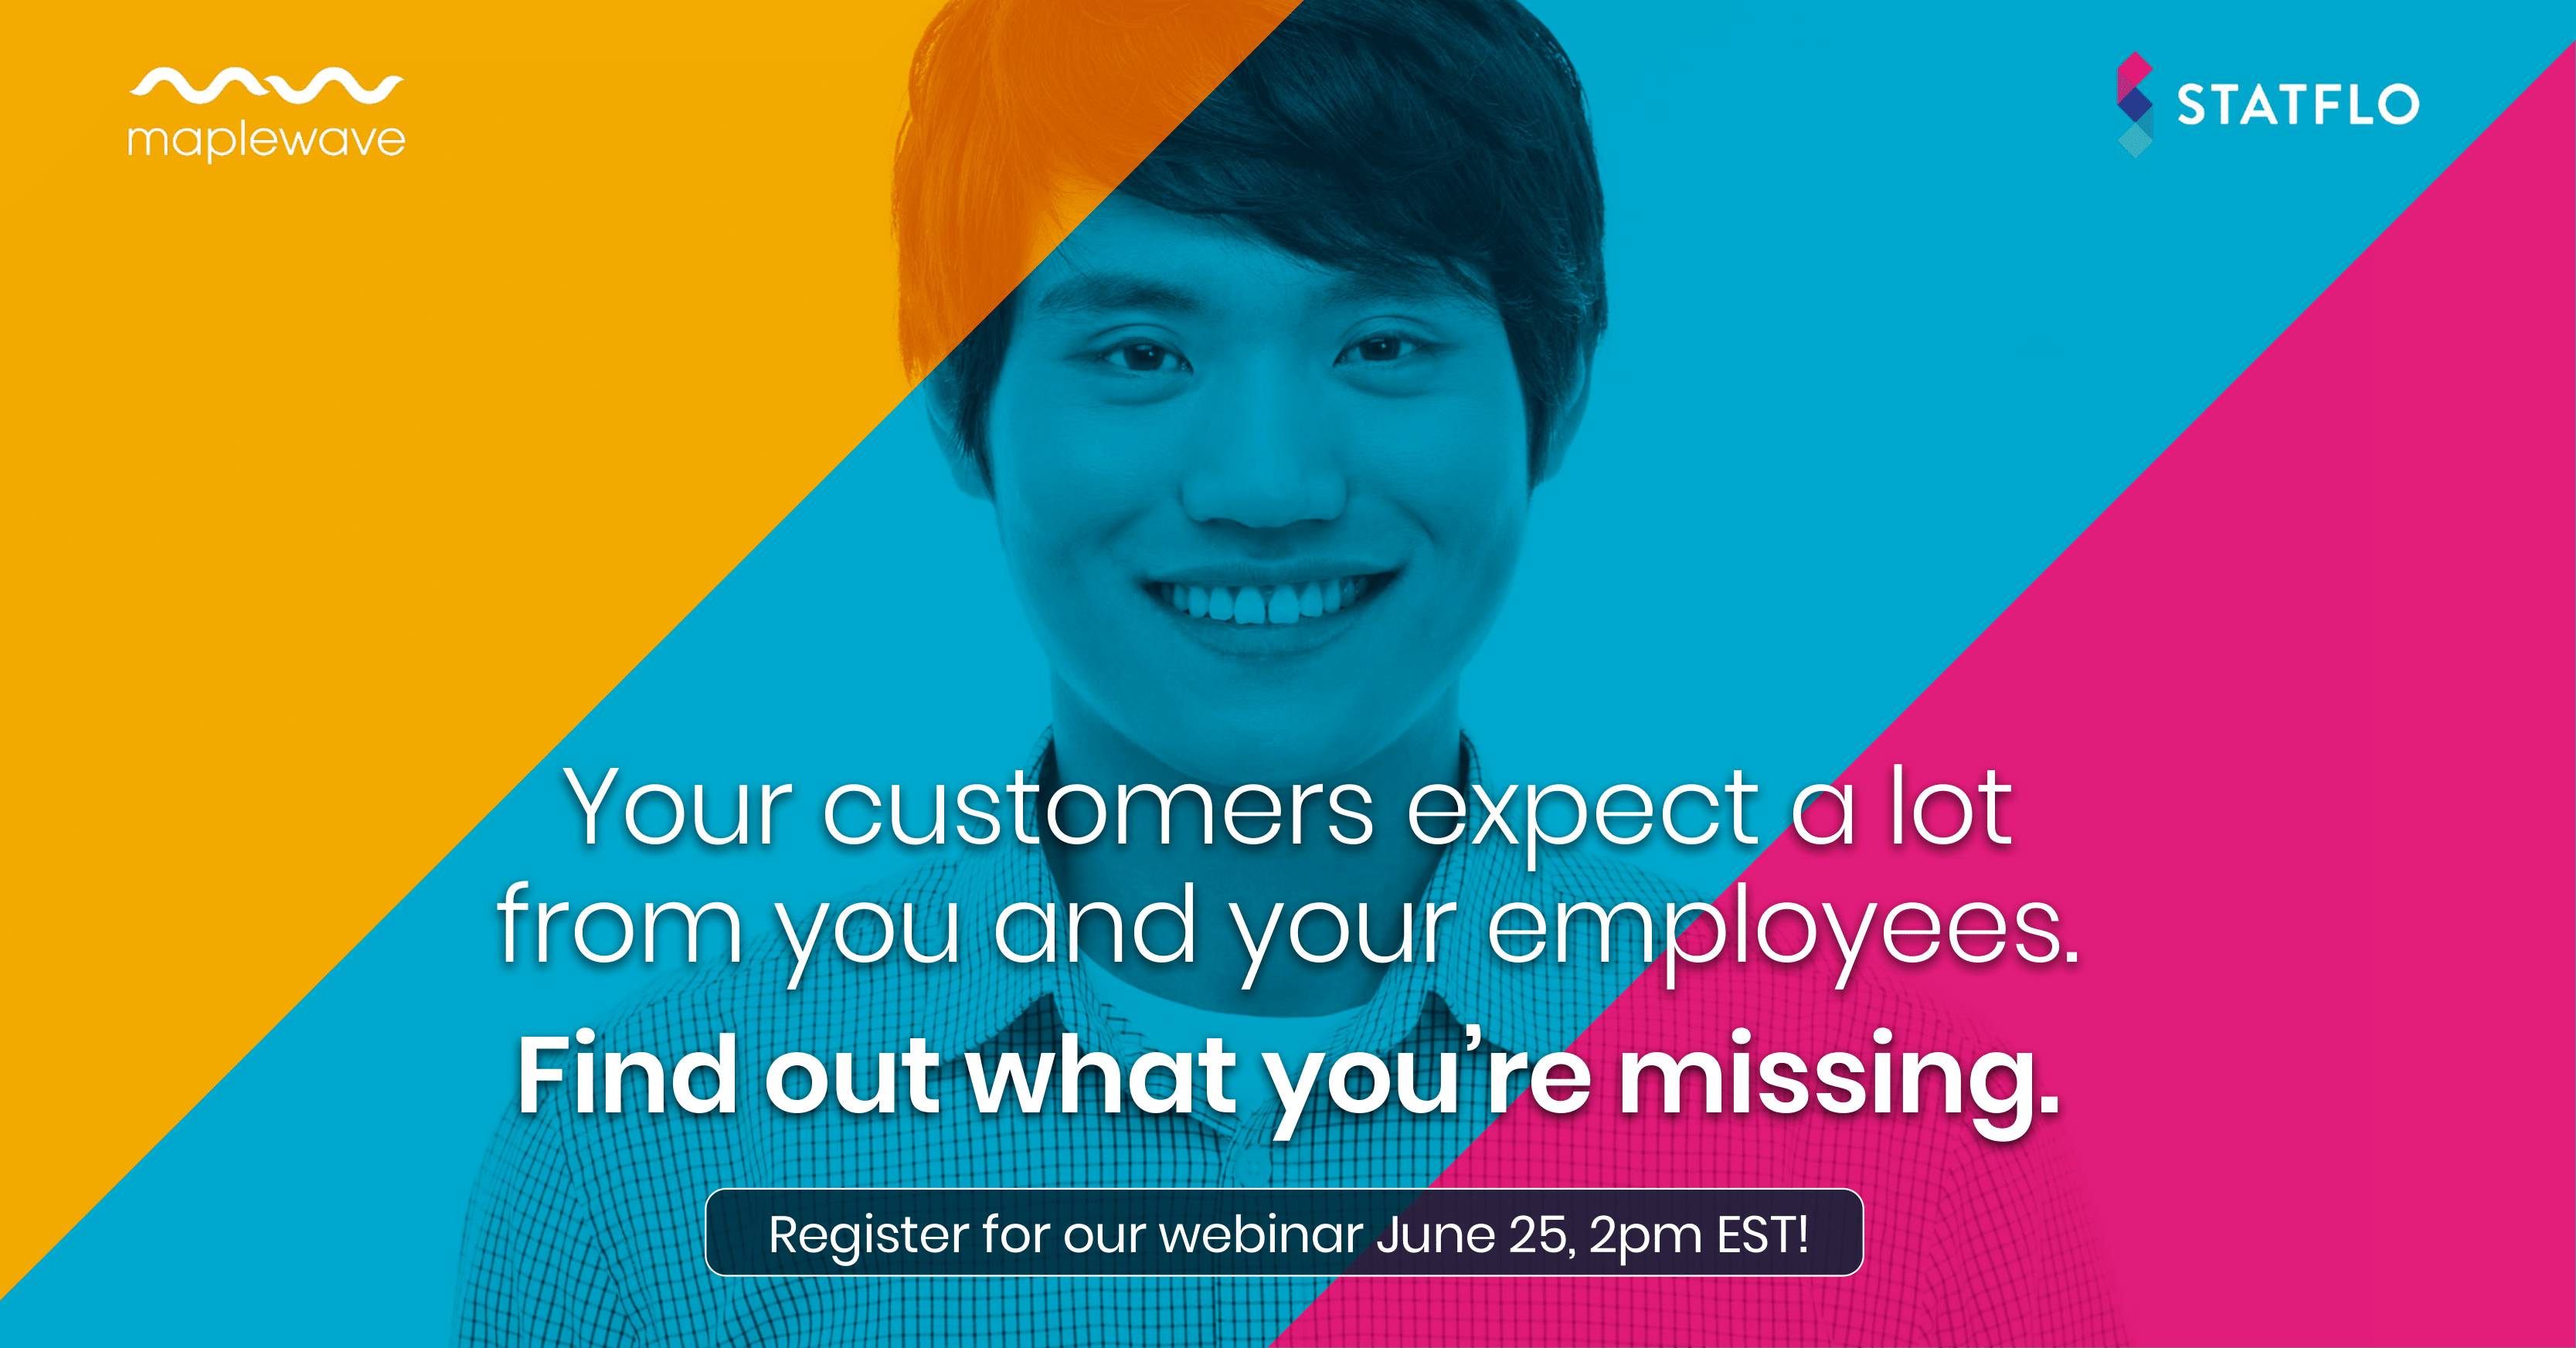 Register for our live webinar on how to develop a training program for your retail team